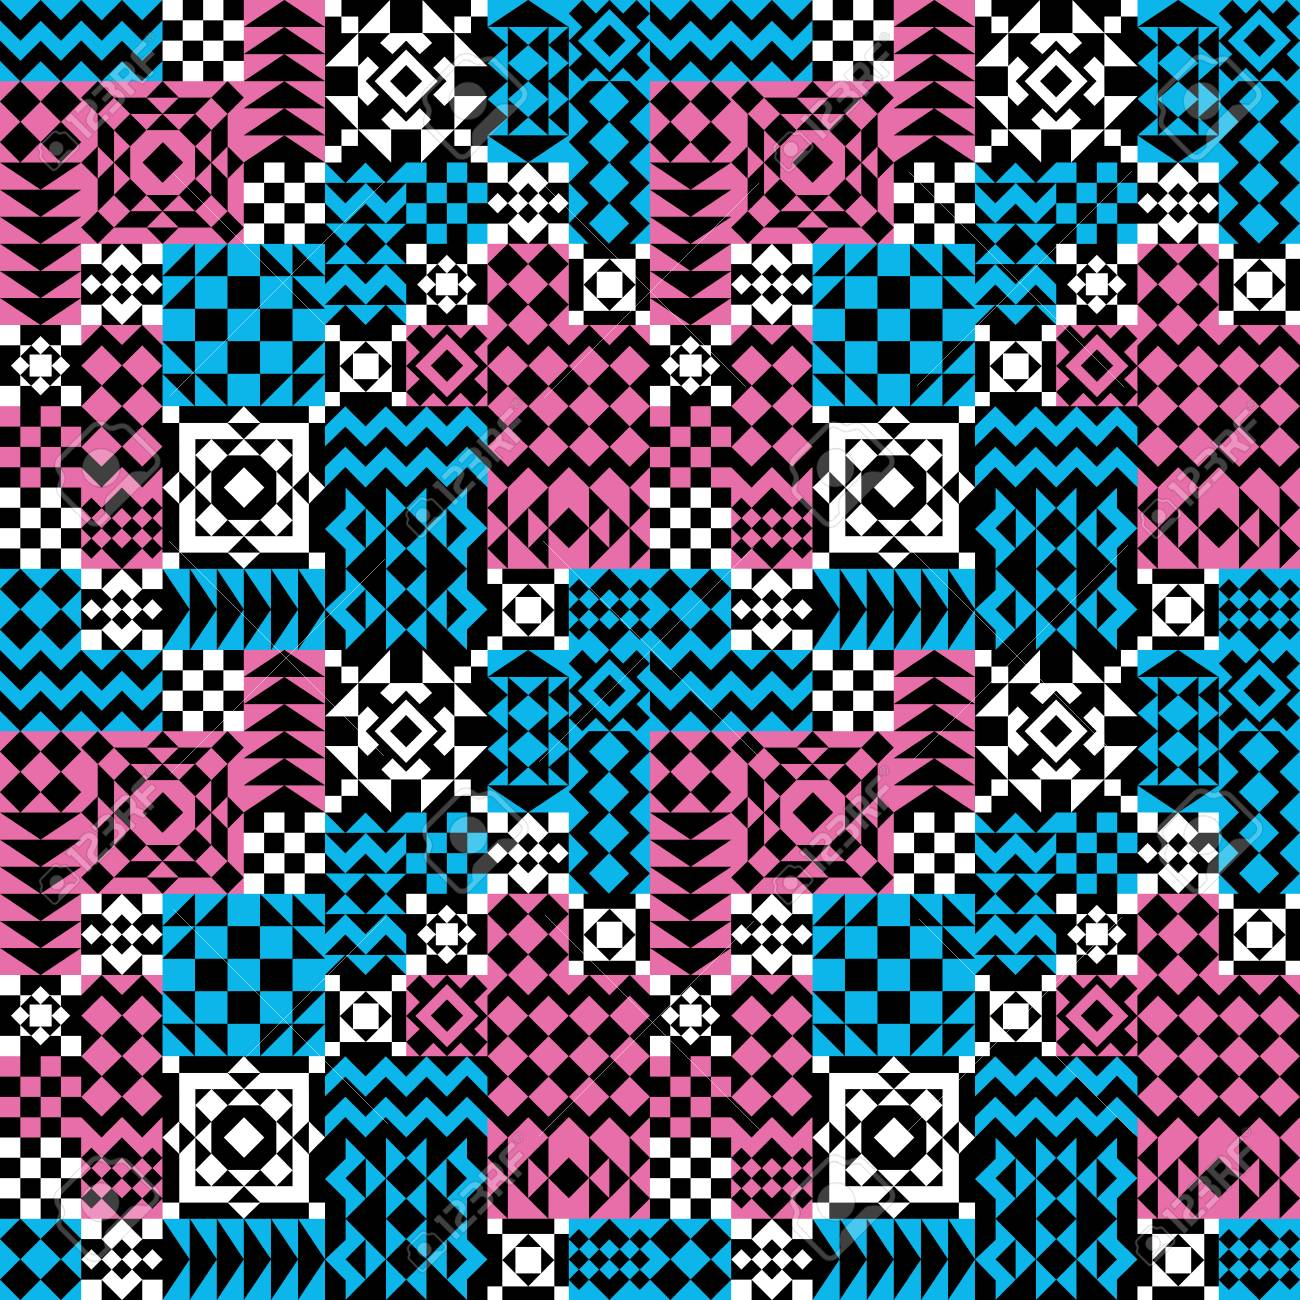 4-Tile Repeat Pattern Of Assorted Geometric Shapes In Pink, Blue ...